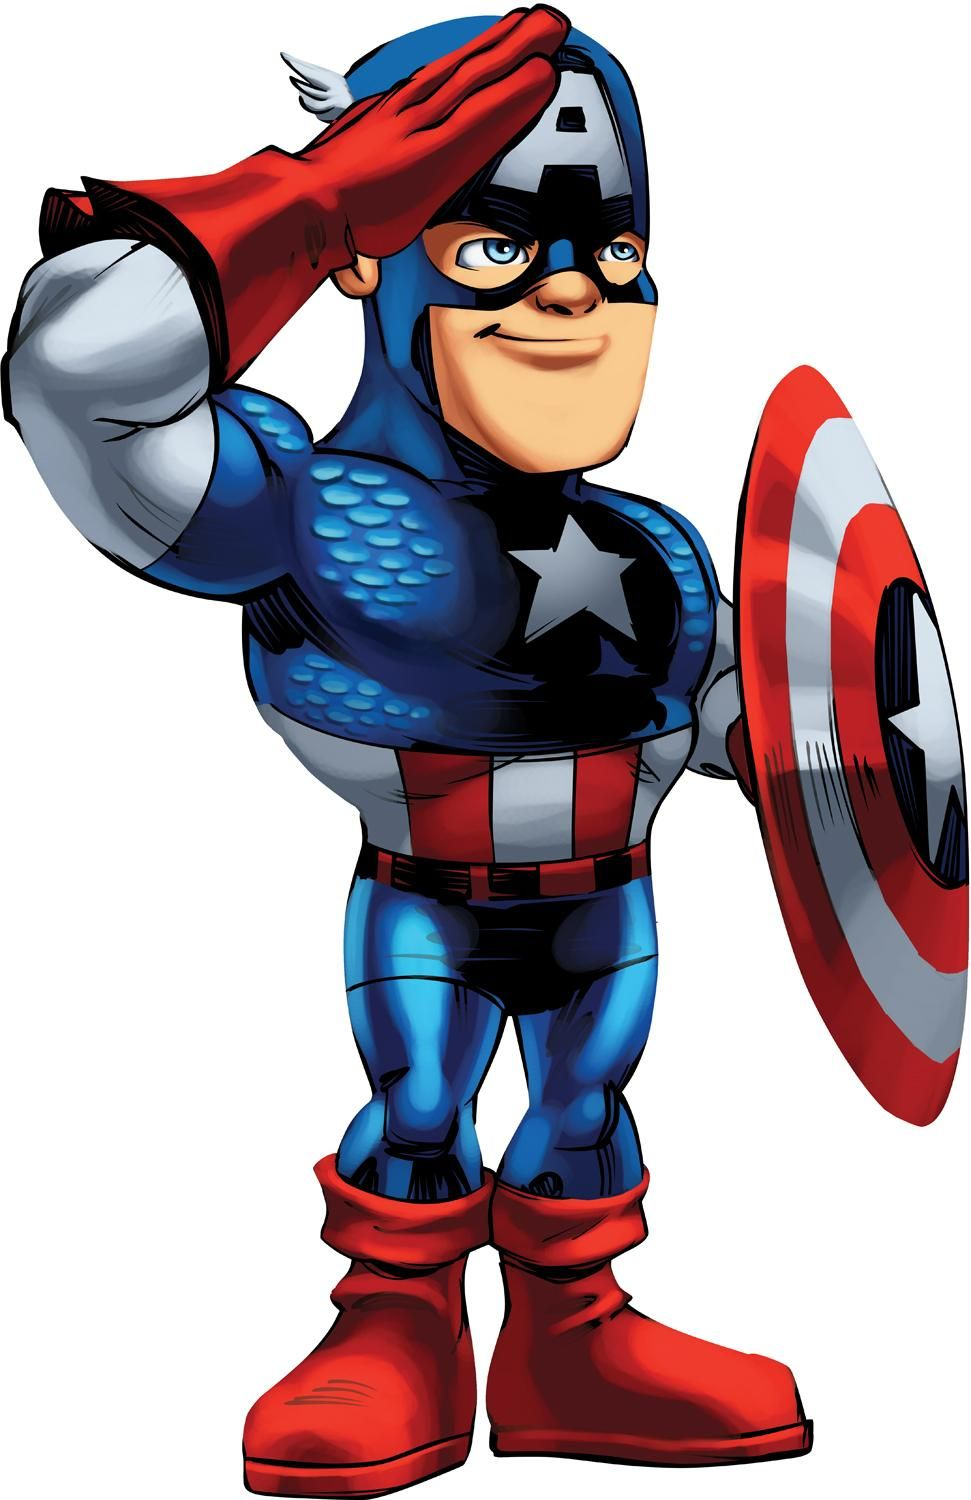 captain america cartoon free large images guy stuff pinterest rh pinterest com captain america clipart black and white captain america shield clipart